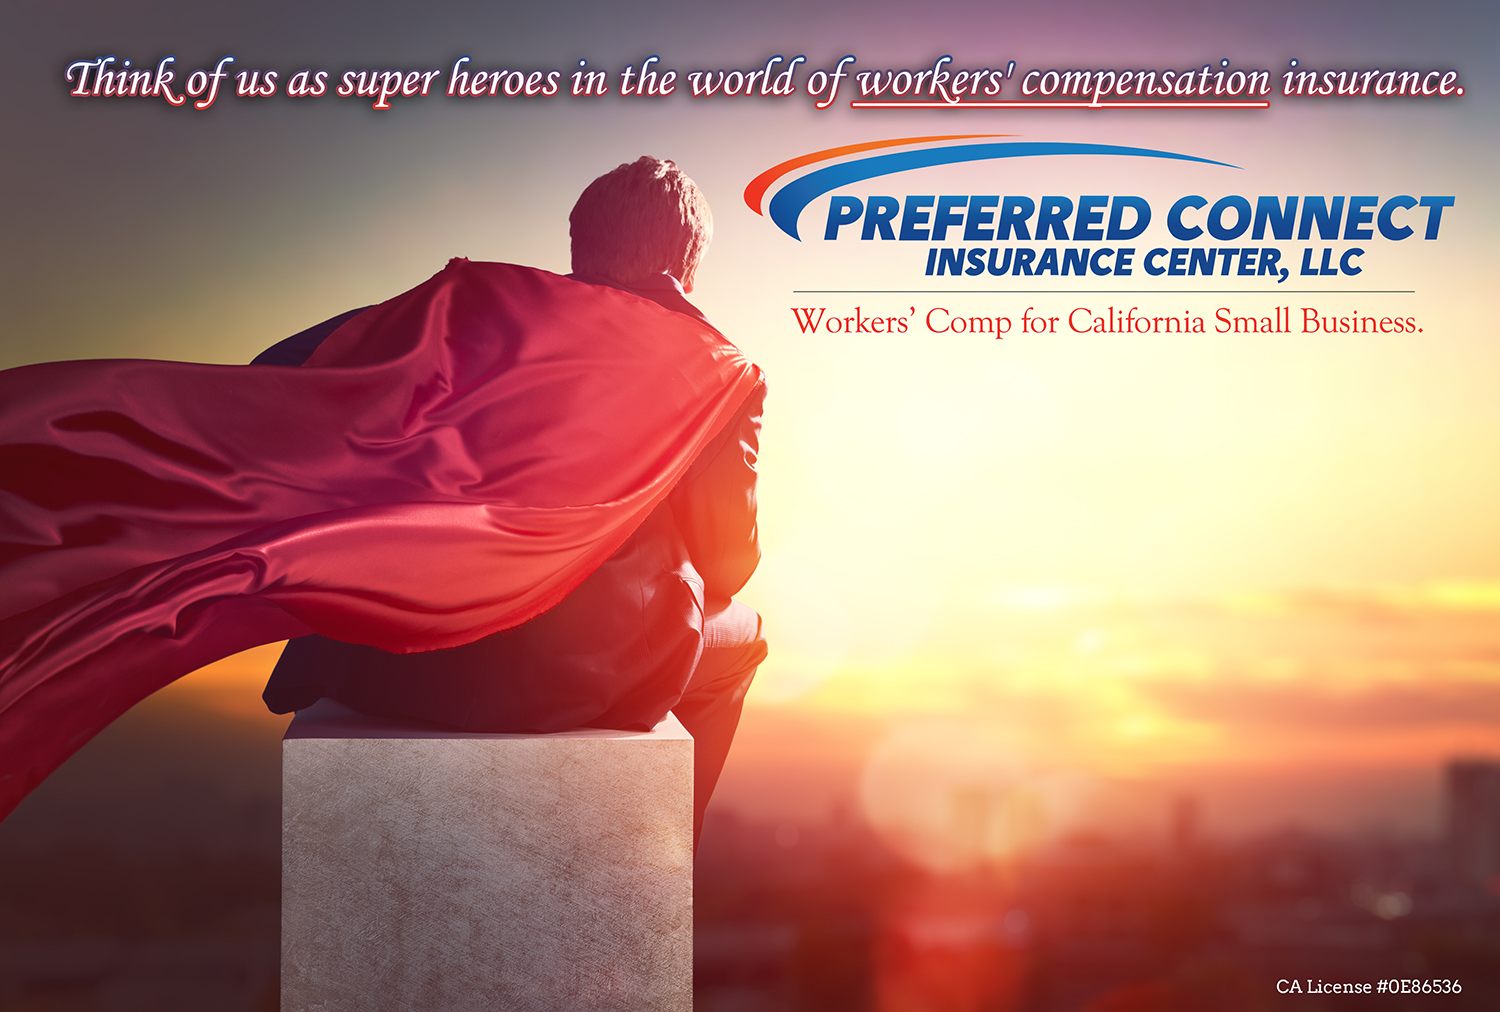 workers compensation insurance super hero